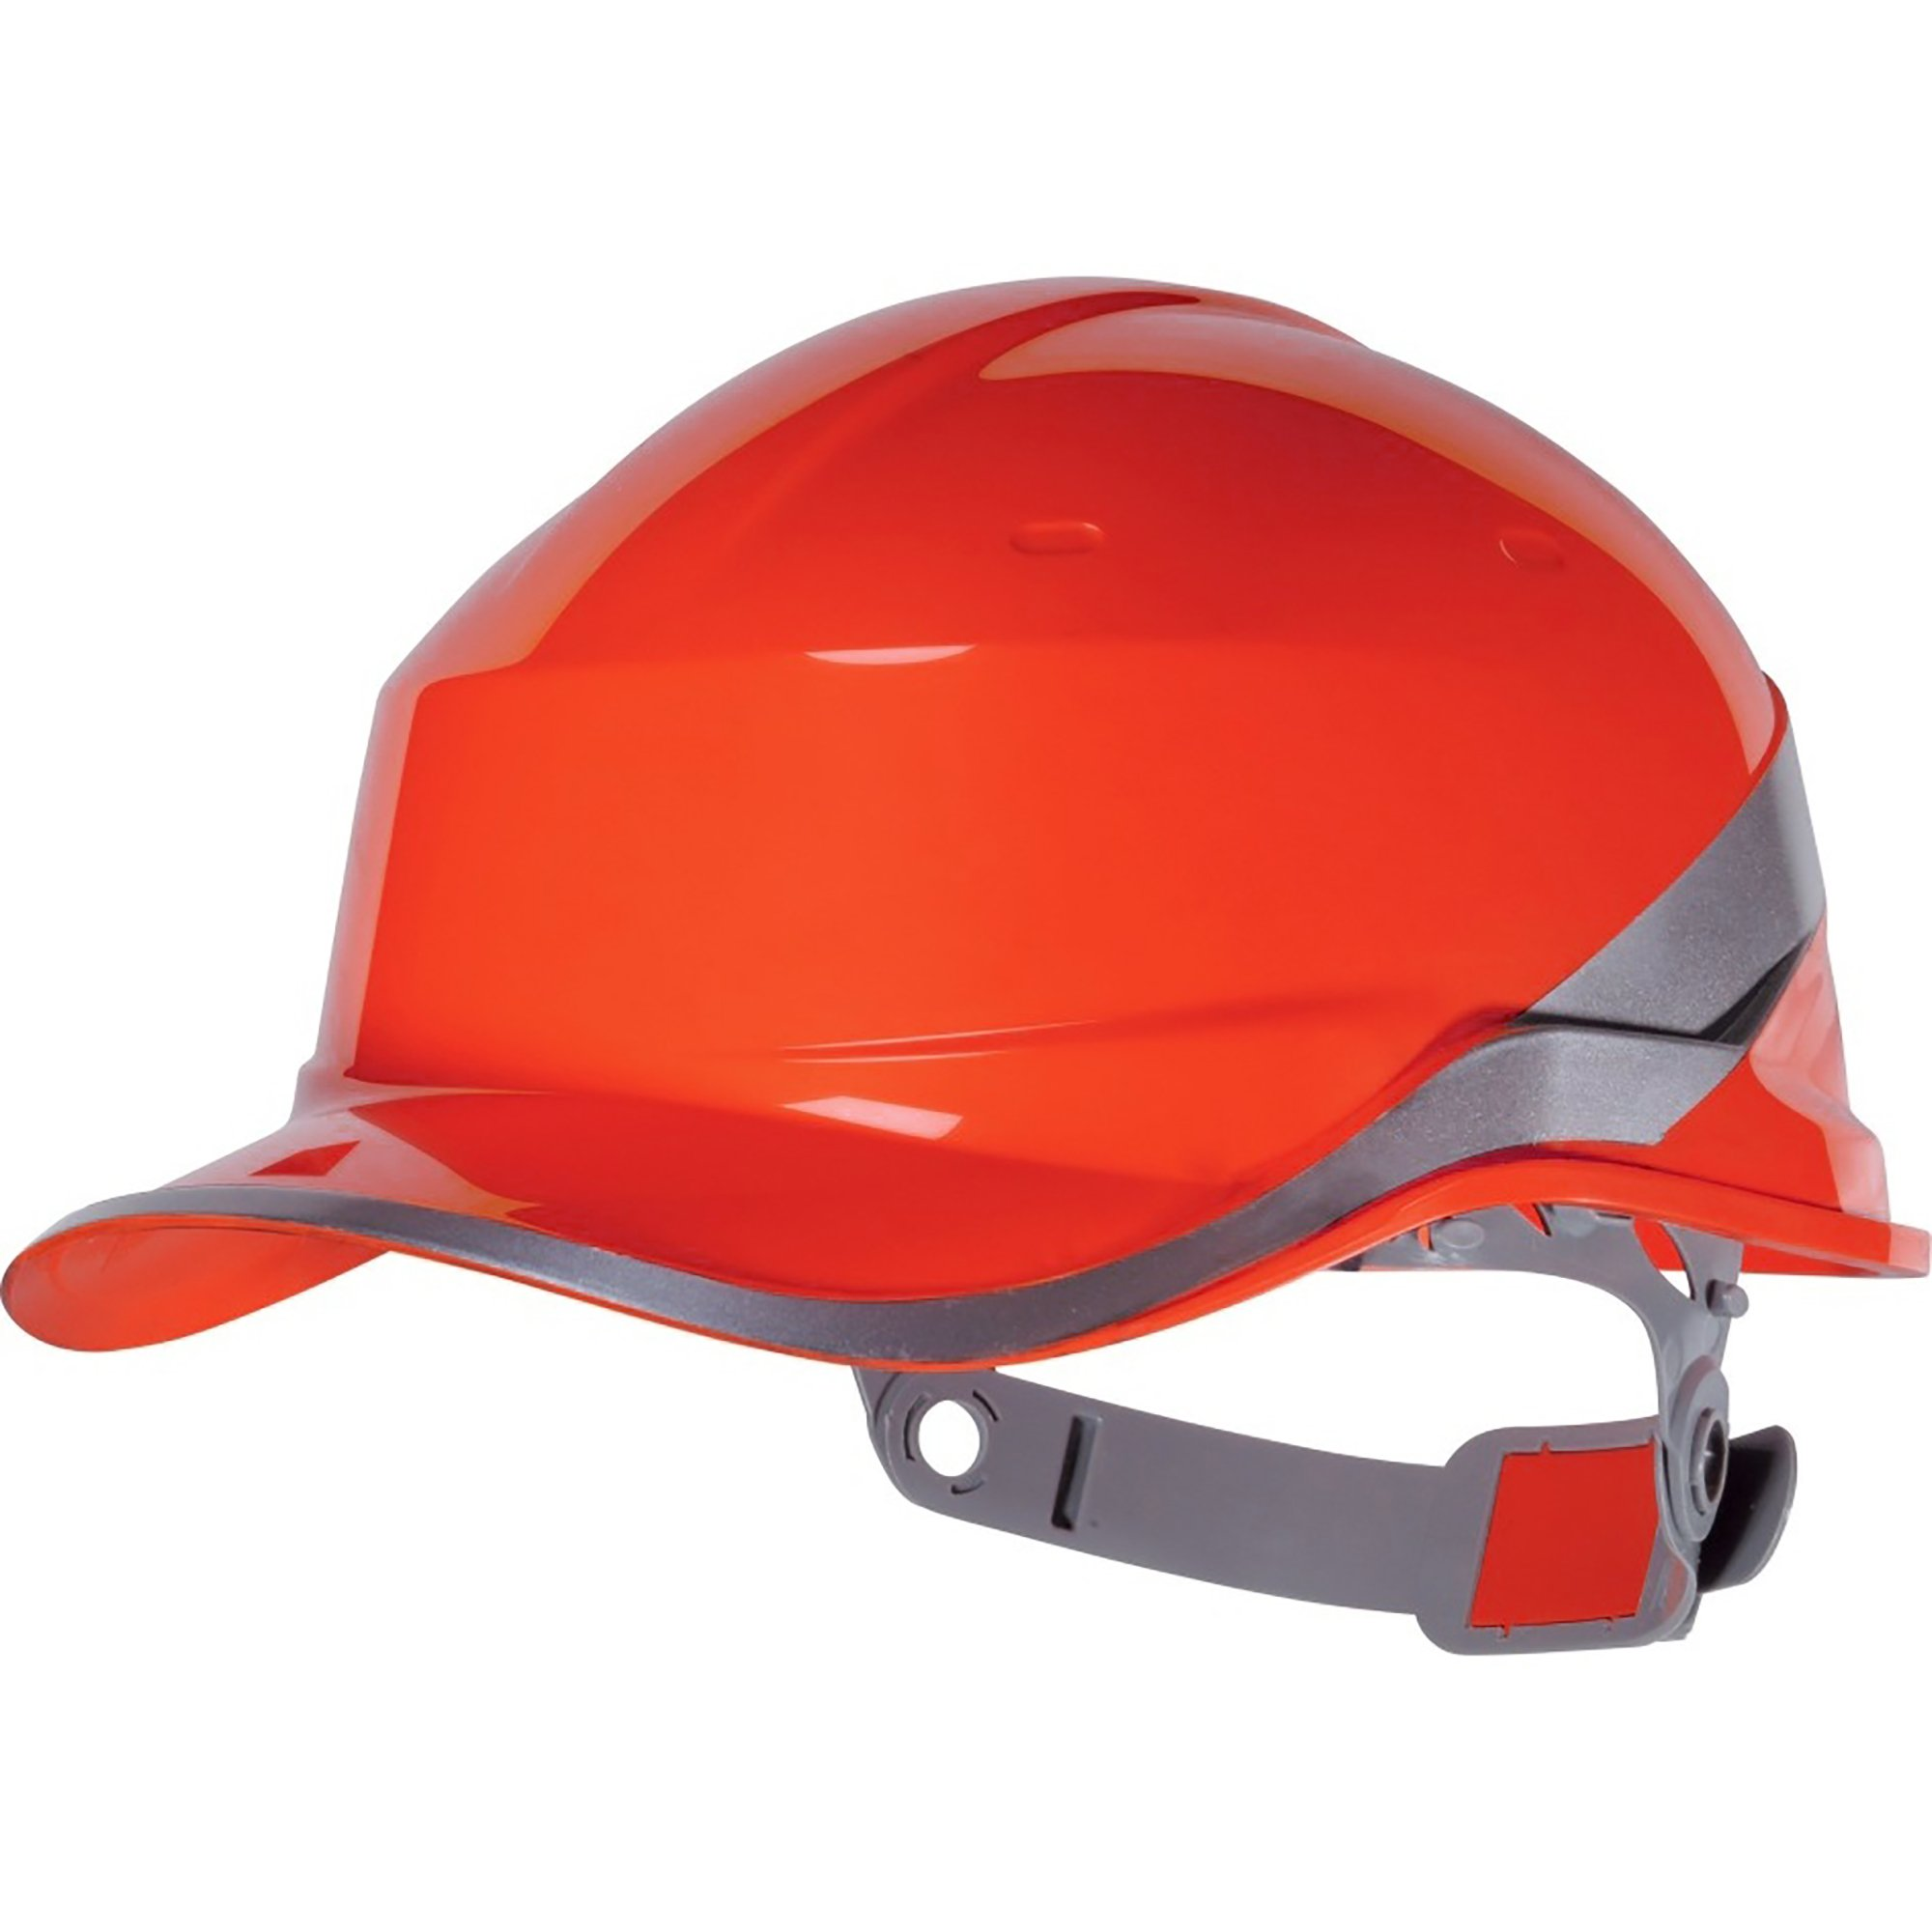 Venitex Hi-Vis Baseball PPE Safety Helmet (One Size) (Red)